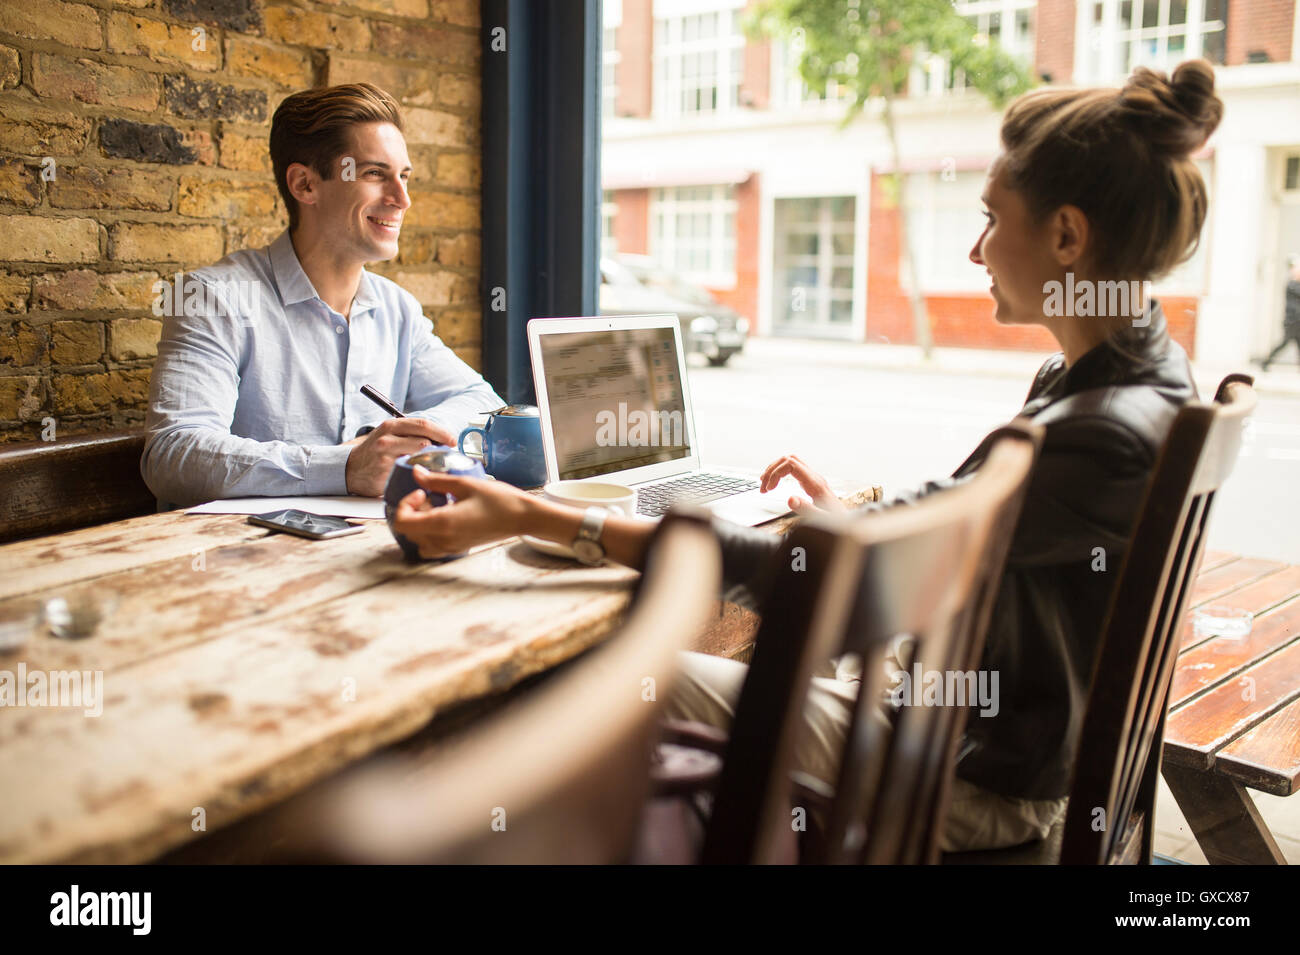 Businessman and woman working in cafe, London, UK - Stock Image